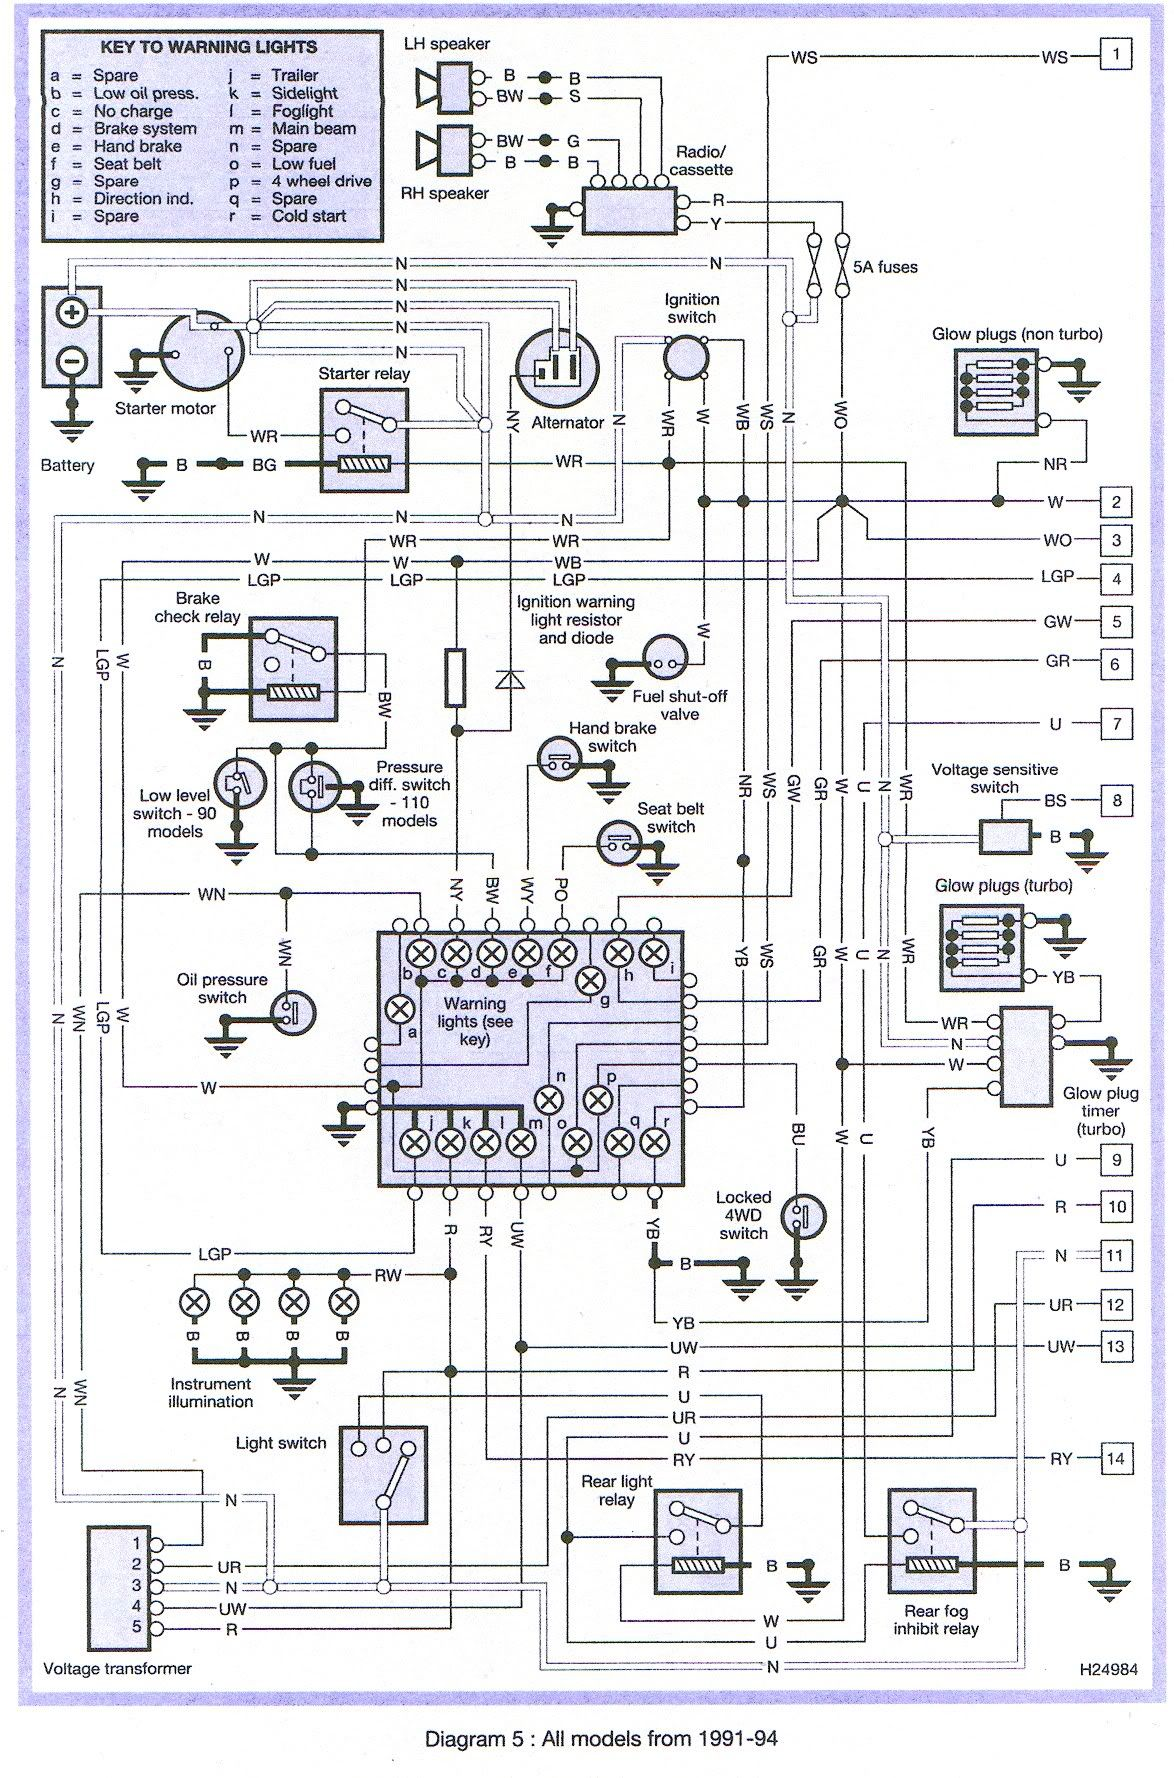 07629544bfff38ad2881b2c21312c6e6 land rover discovery wiring diagram manual repair with engine land rover discovery fuel pump wiring diagram at soozxer.org